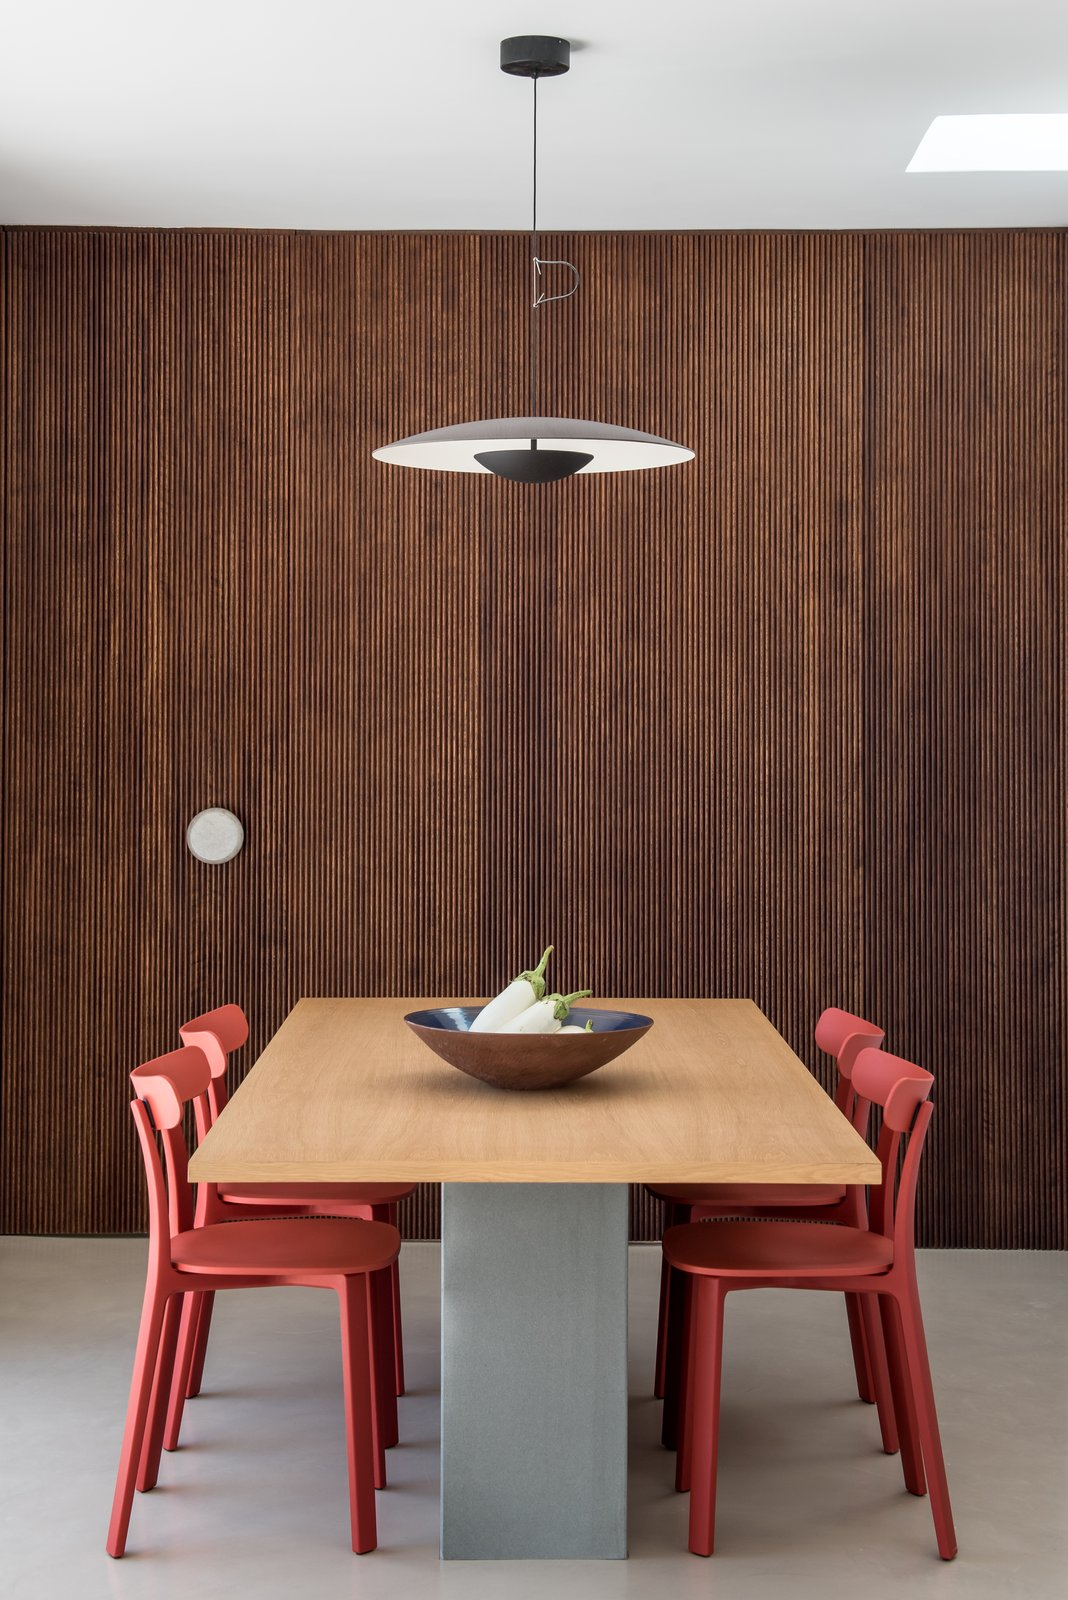 Dining Room, Pendant Lighting, Concrete Floor, Chair, and Table Inside the home, a simple, neutral color scheme harmonizes with warm natural oak, walnut wood, and dramatic black steel details.    Photo 11 of 18 in A Modern Home Is Gently Slotted Into a Steep Slope in Santorini